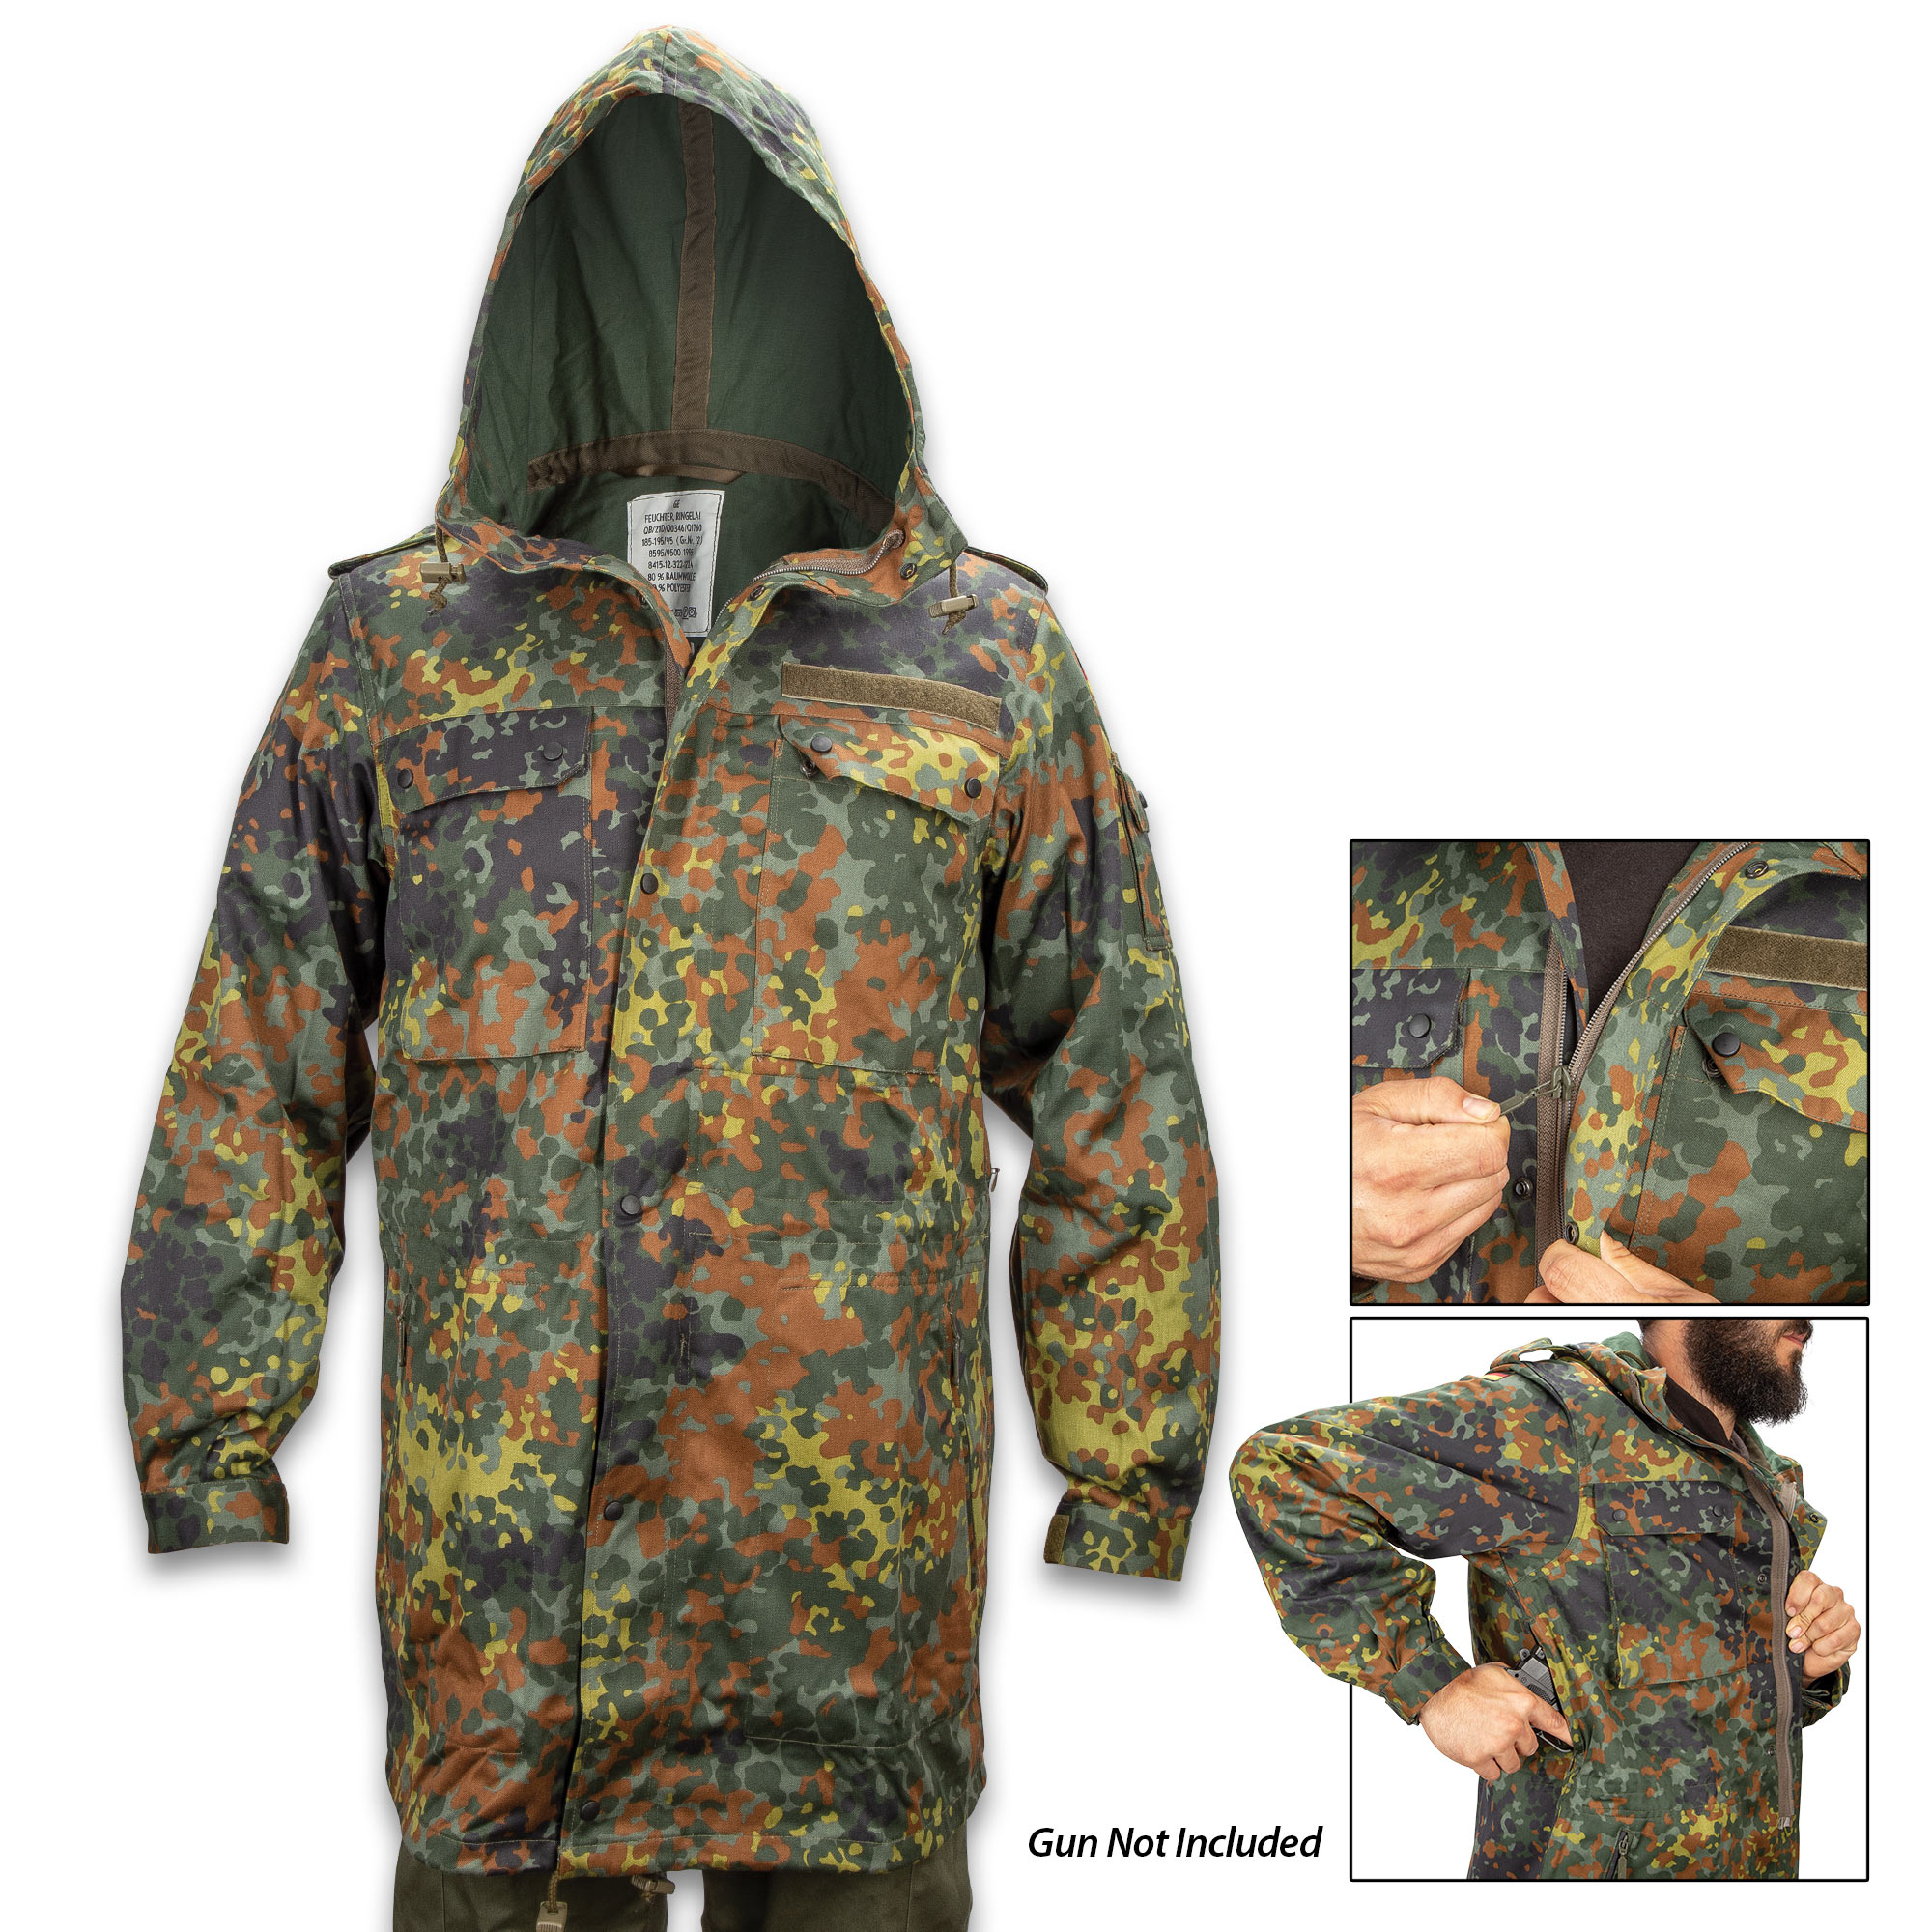 9d59fc5c38192 German Military Flectarn Camo Parka With Hood - New, Cotton And ...